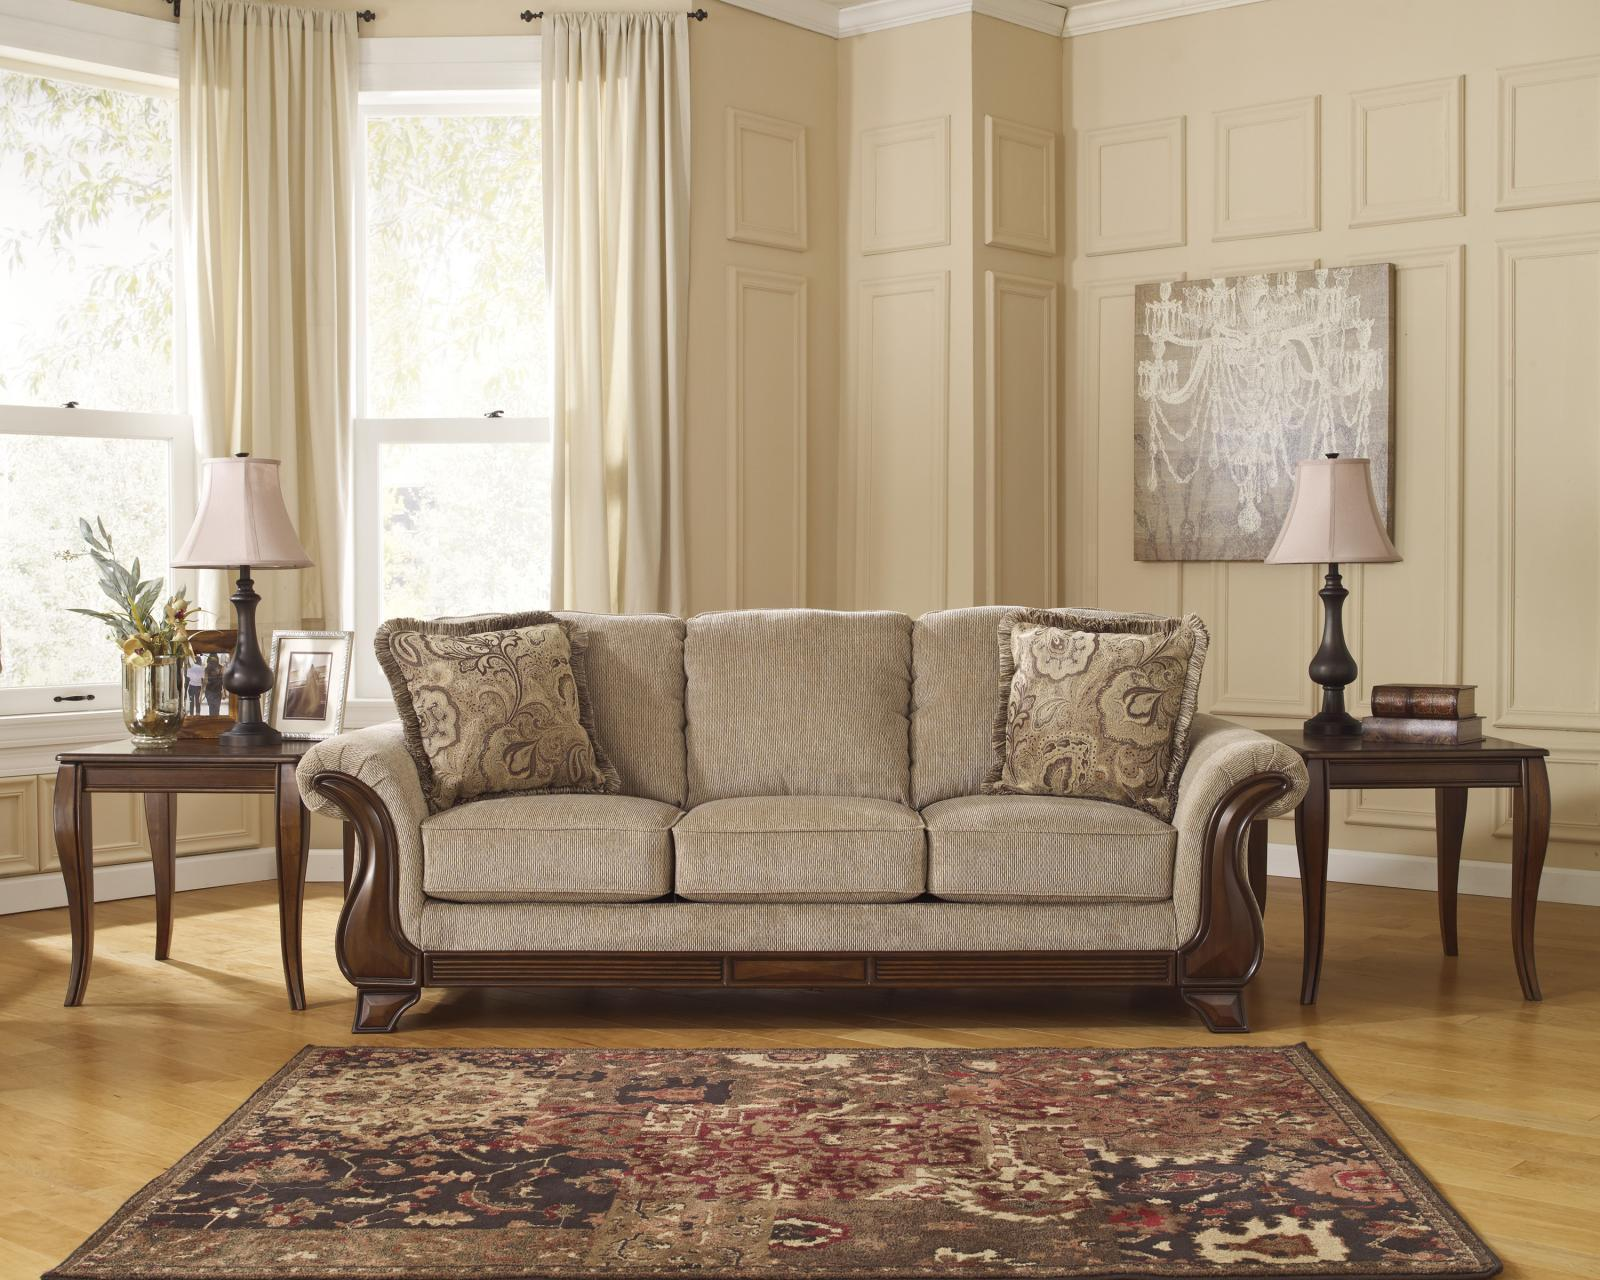 Ashley Lanett Living Room Set 2pcs in Barley Upholstery Fabric Traditional